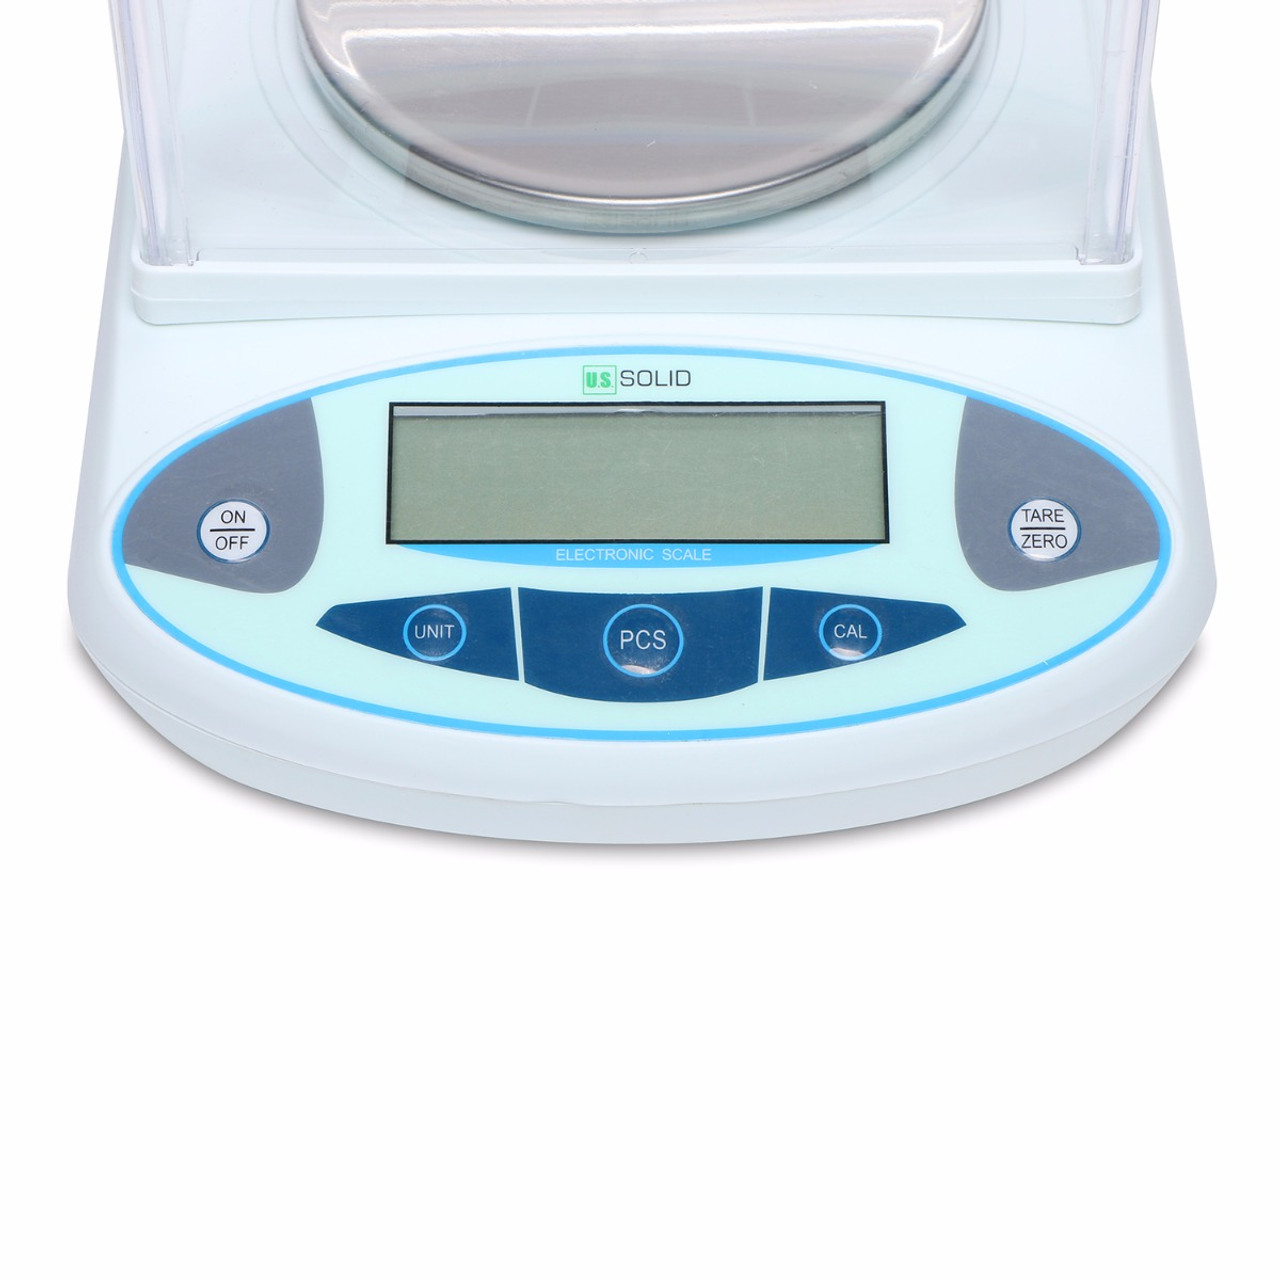 1000g x 0.01 g Lab Scale, 0.01 g Digital Analytical Balance